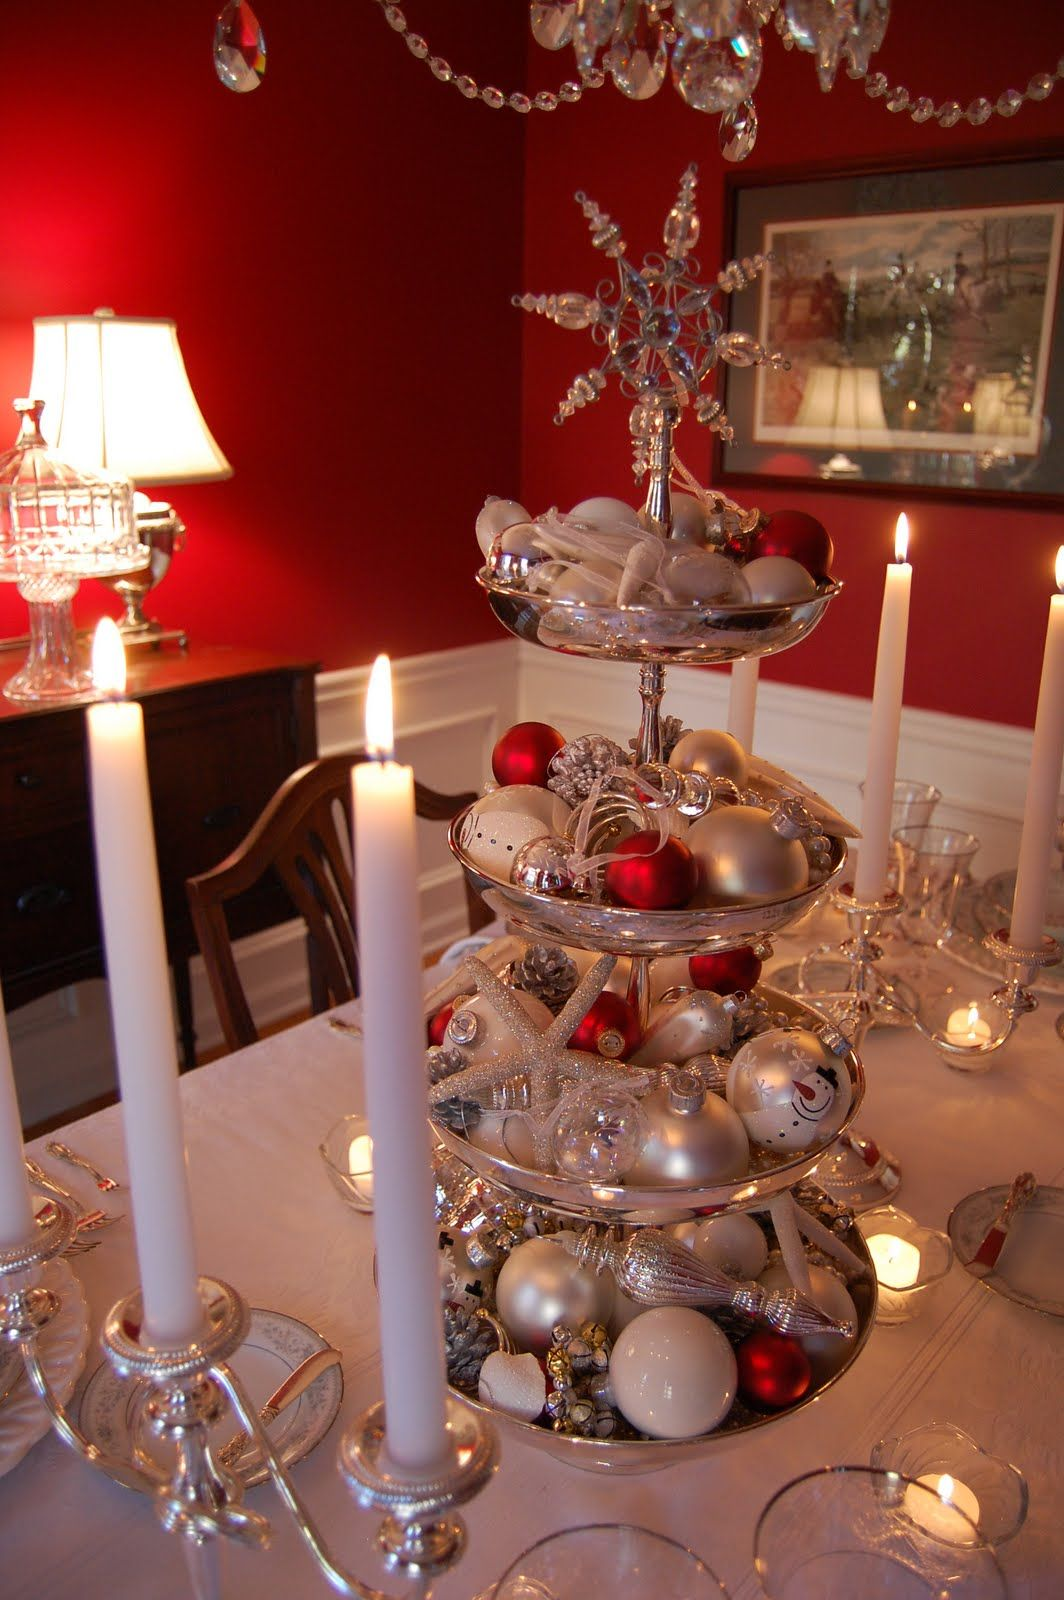 Silver Tiered Centerpiece For Christmas Christmas Table Decorations Christmas Centerpieces Christmas Table Settings